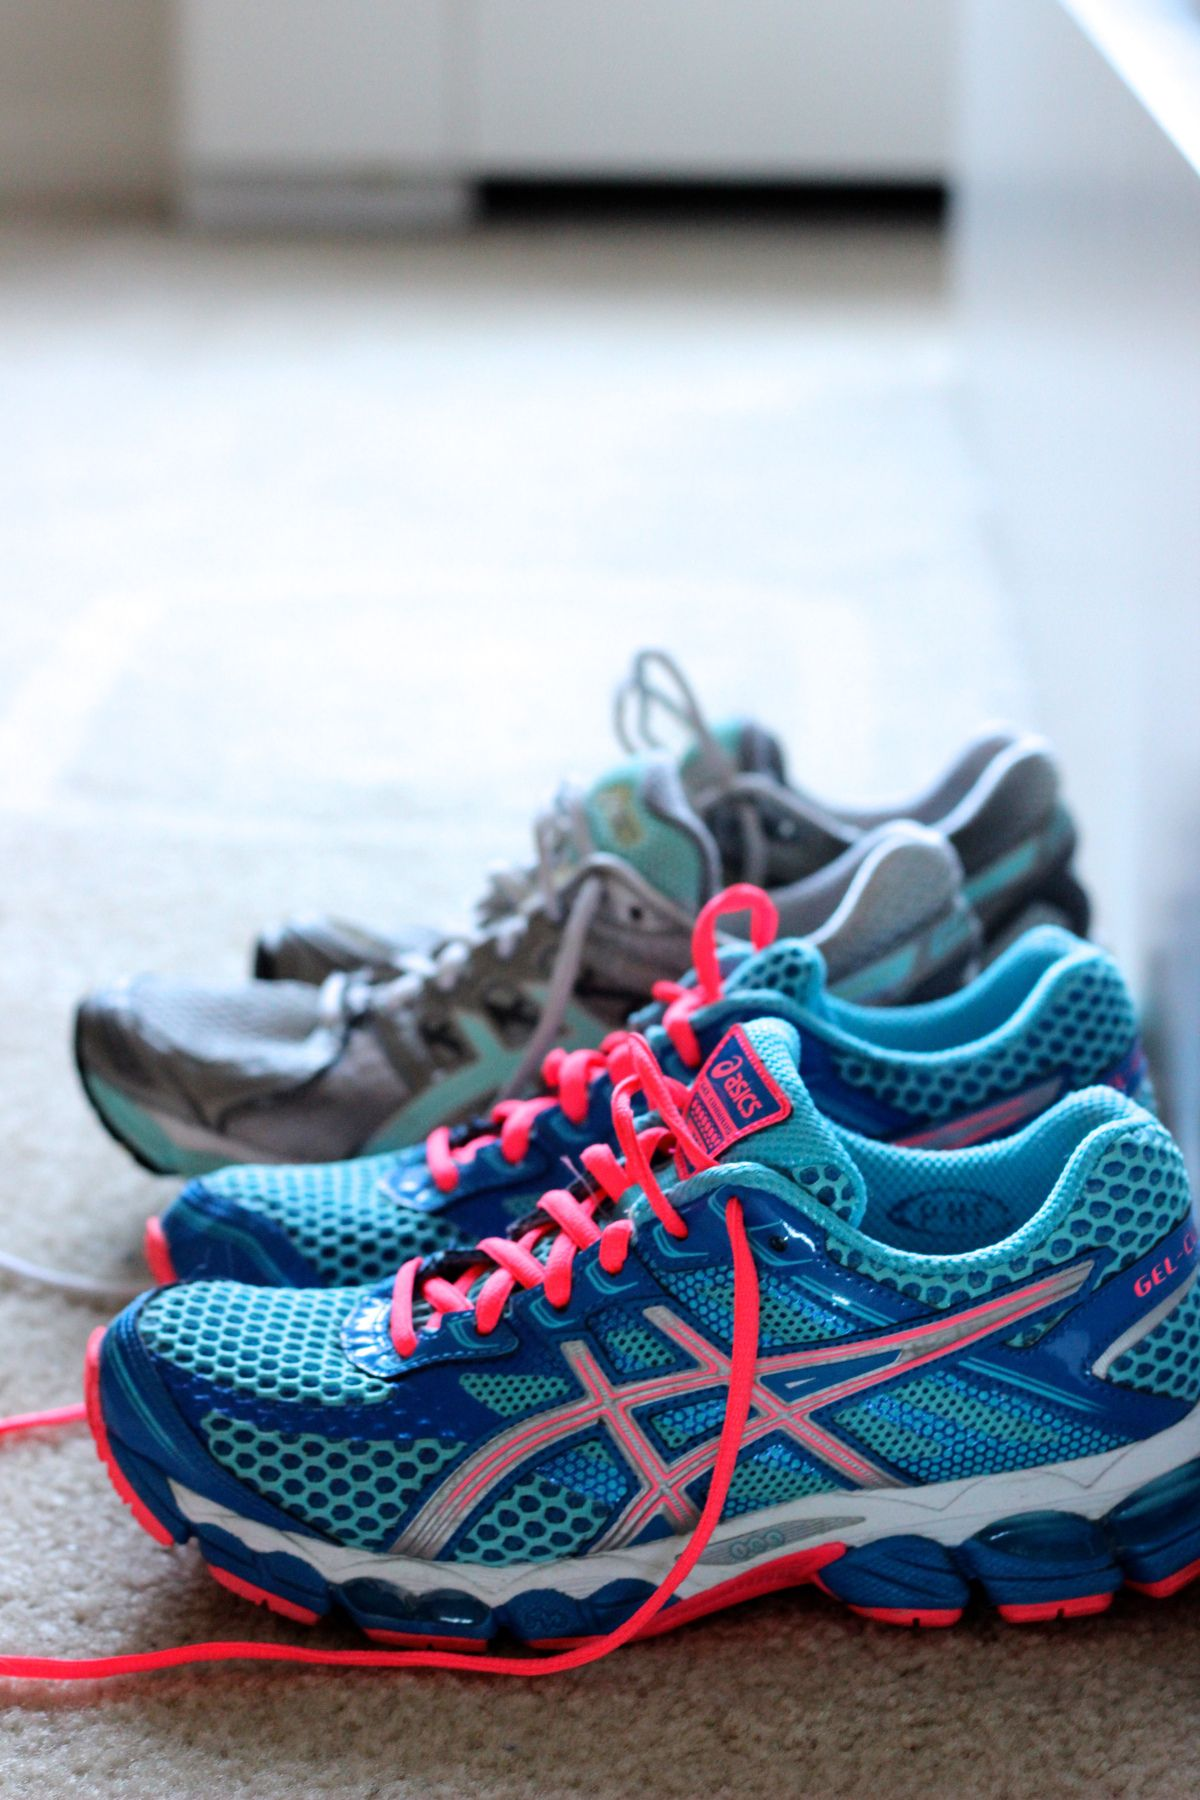 Living Fitness | Running shoes, Marathons and I love